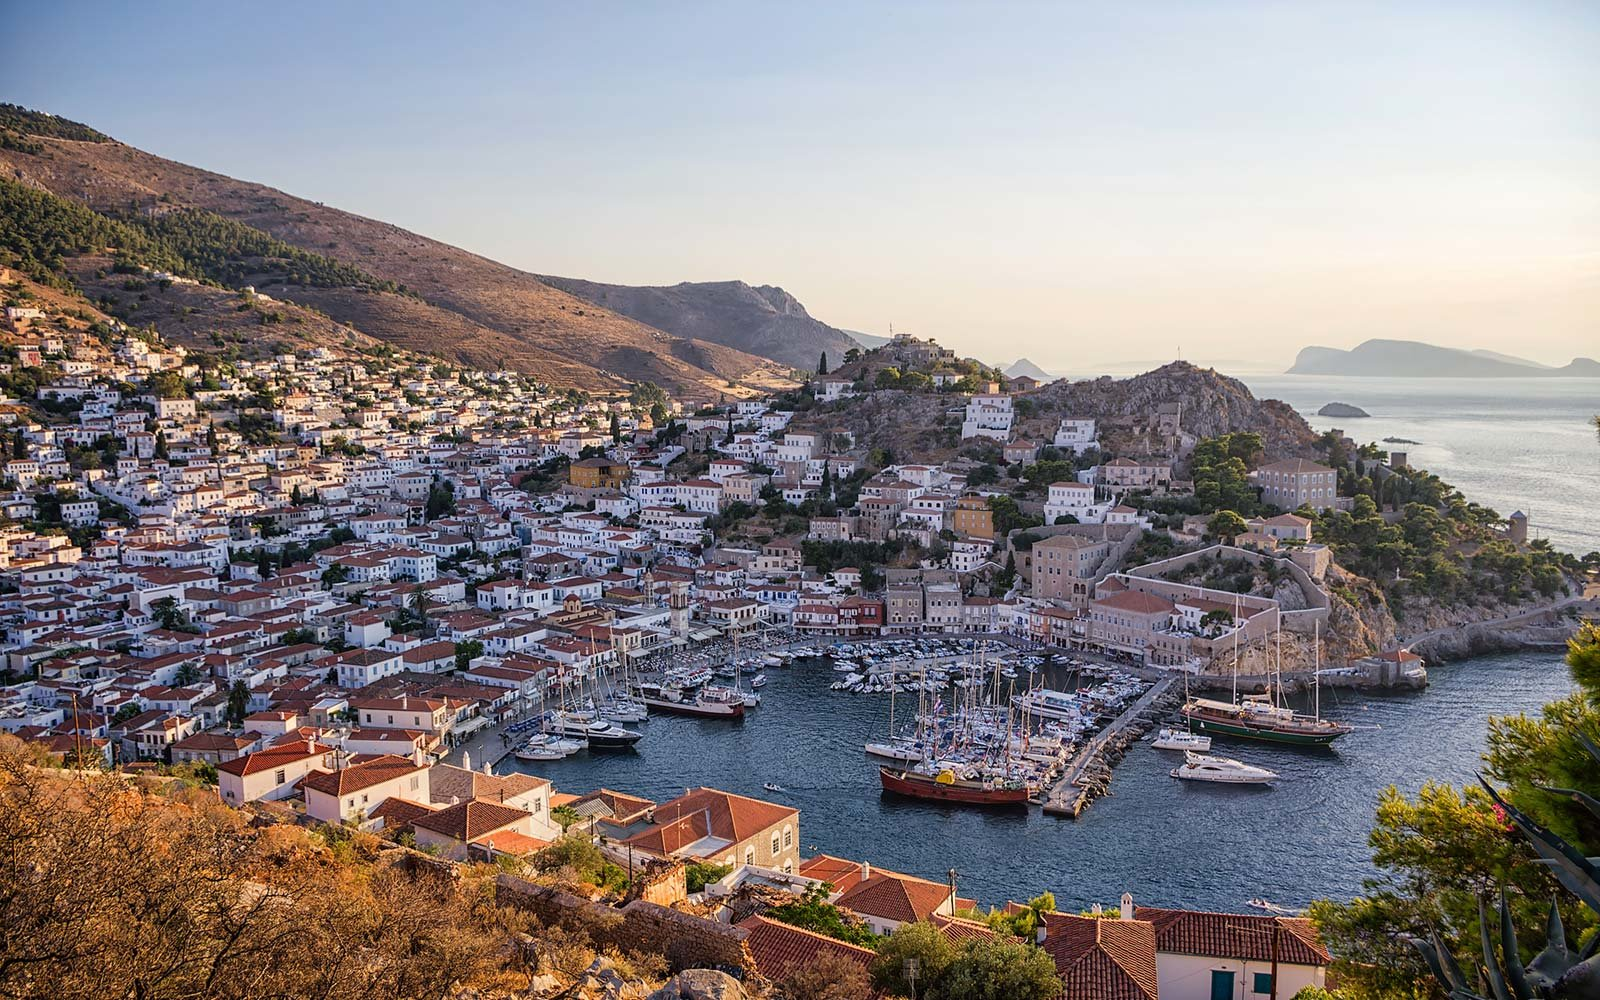 Hydra island, Saronic Gulf Islands, Greece